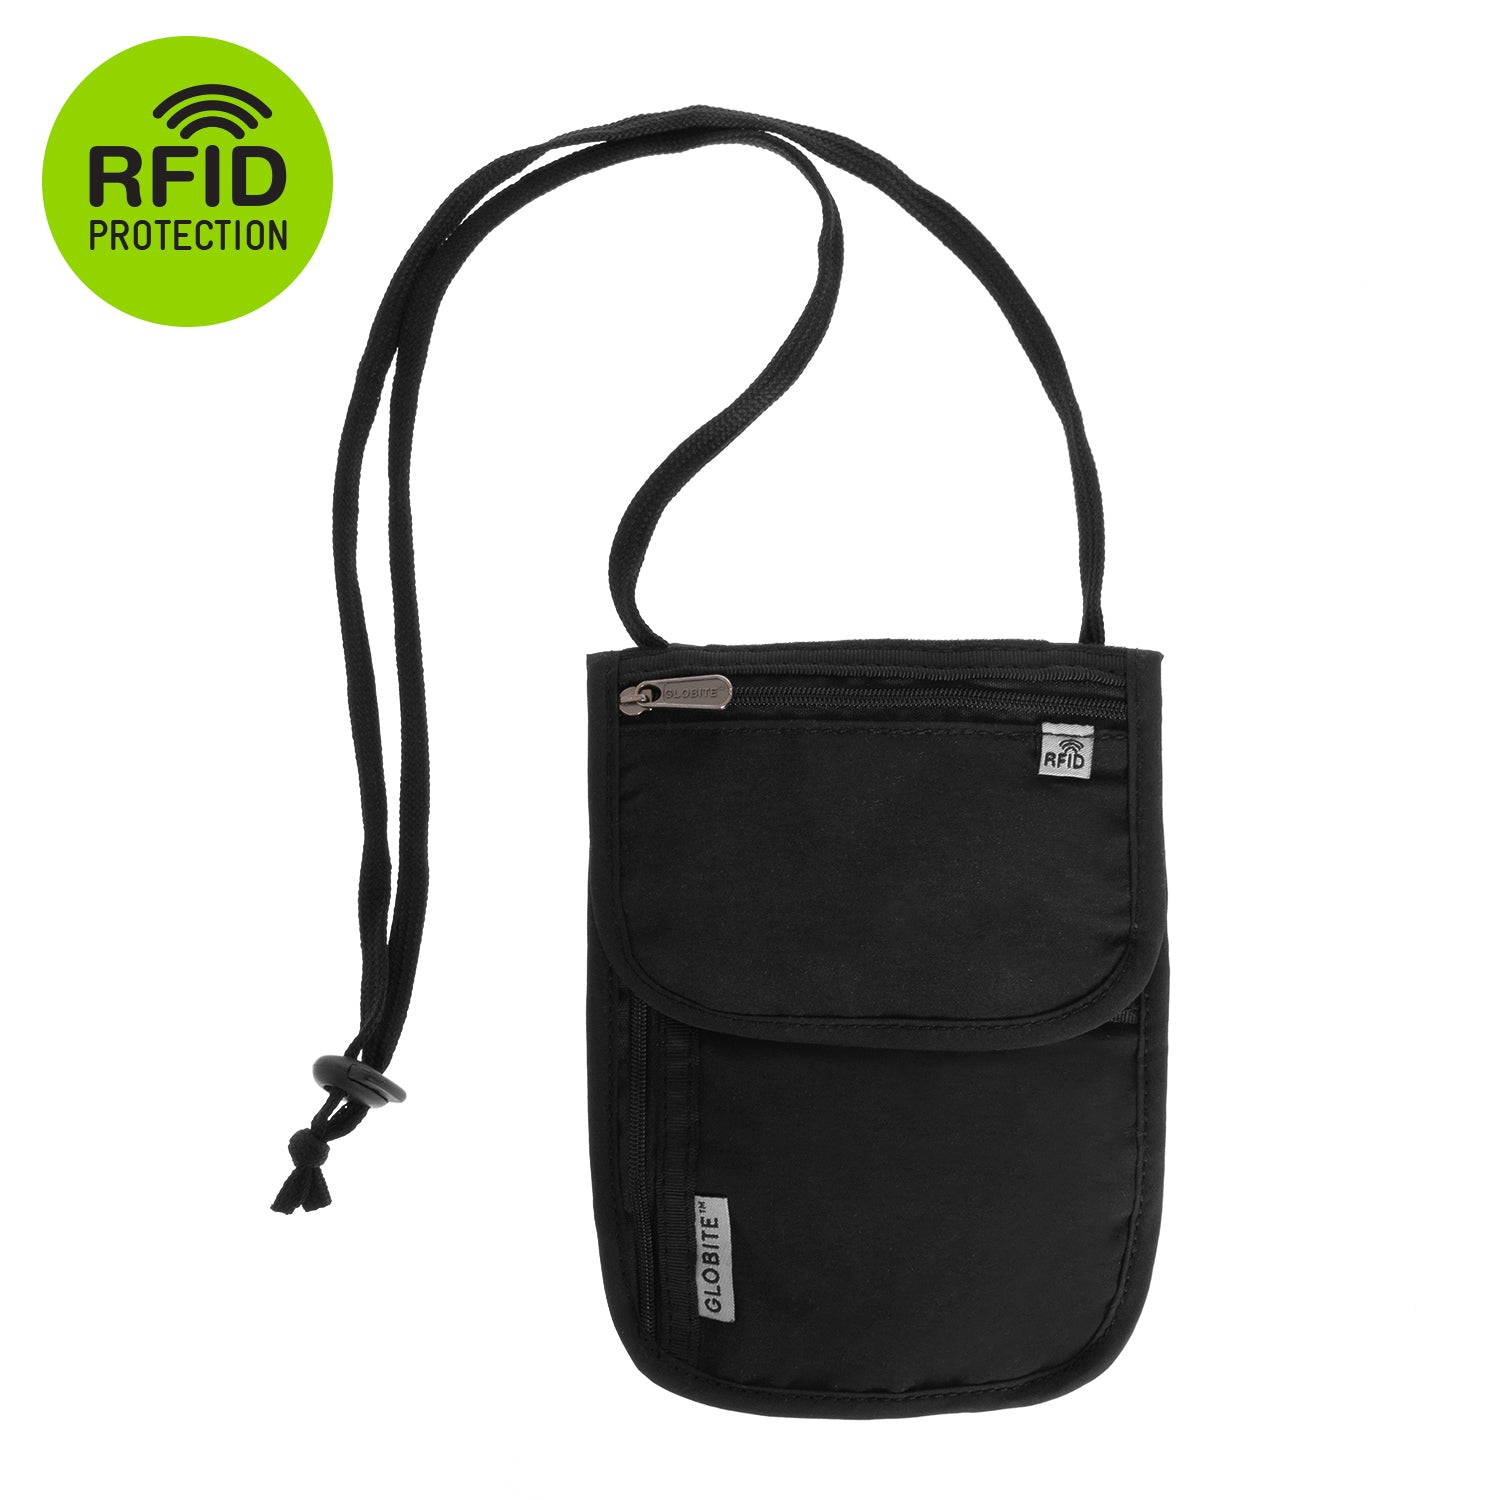 RFID Security Neck Pouch